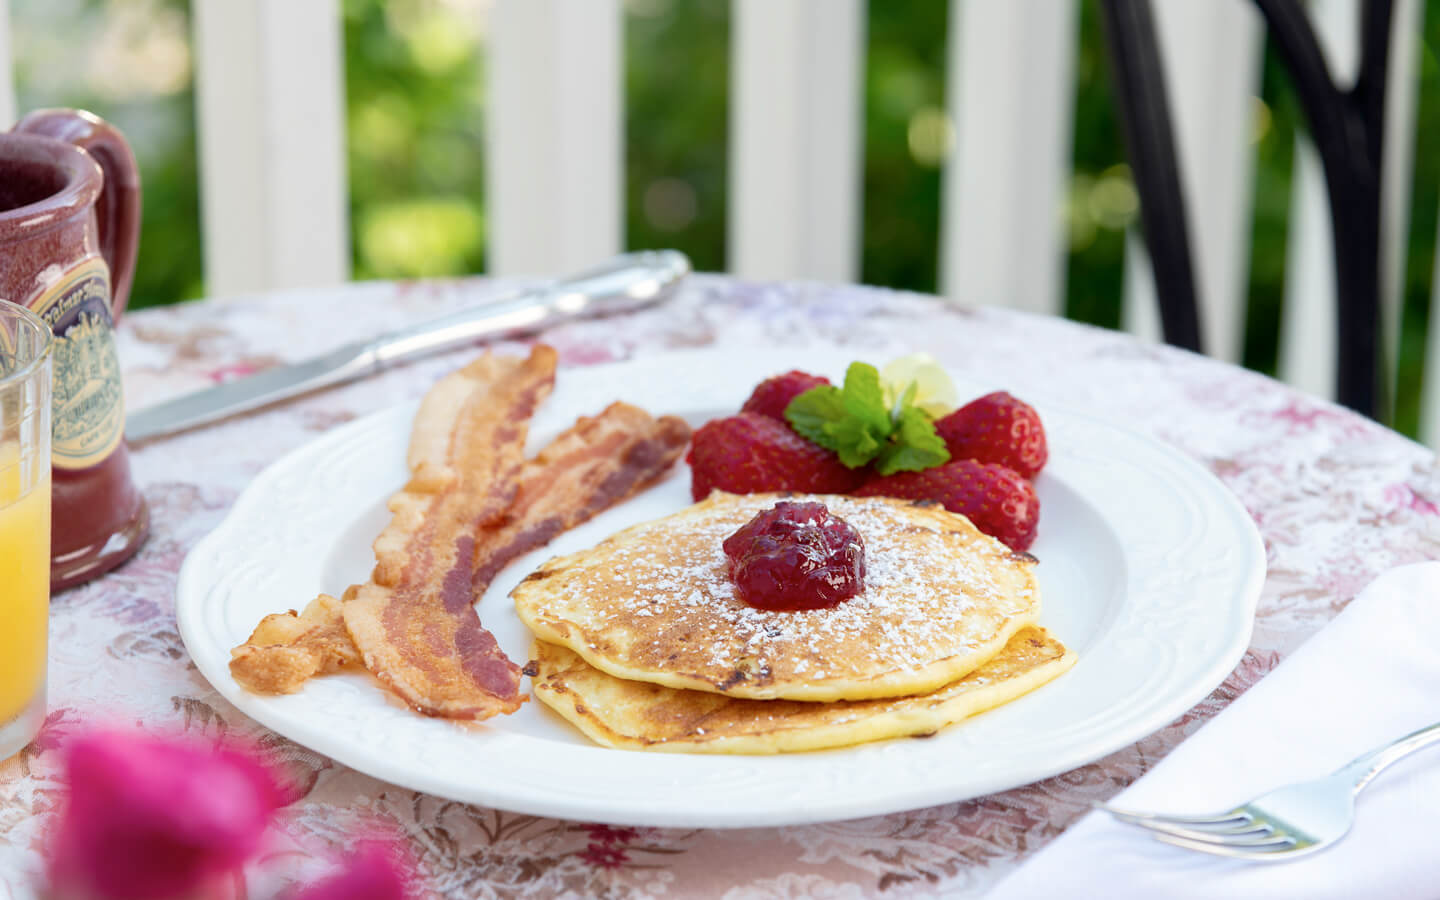 Pancakes with bacon and strawberriesat outside table